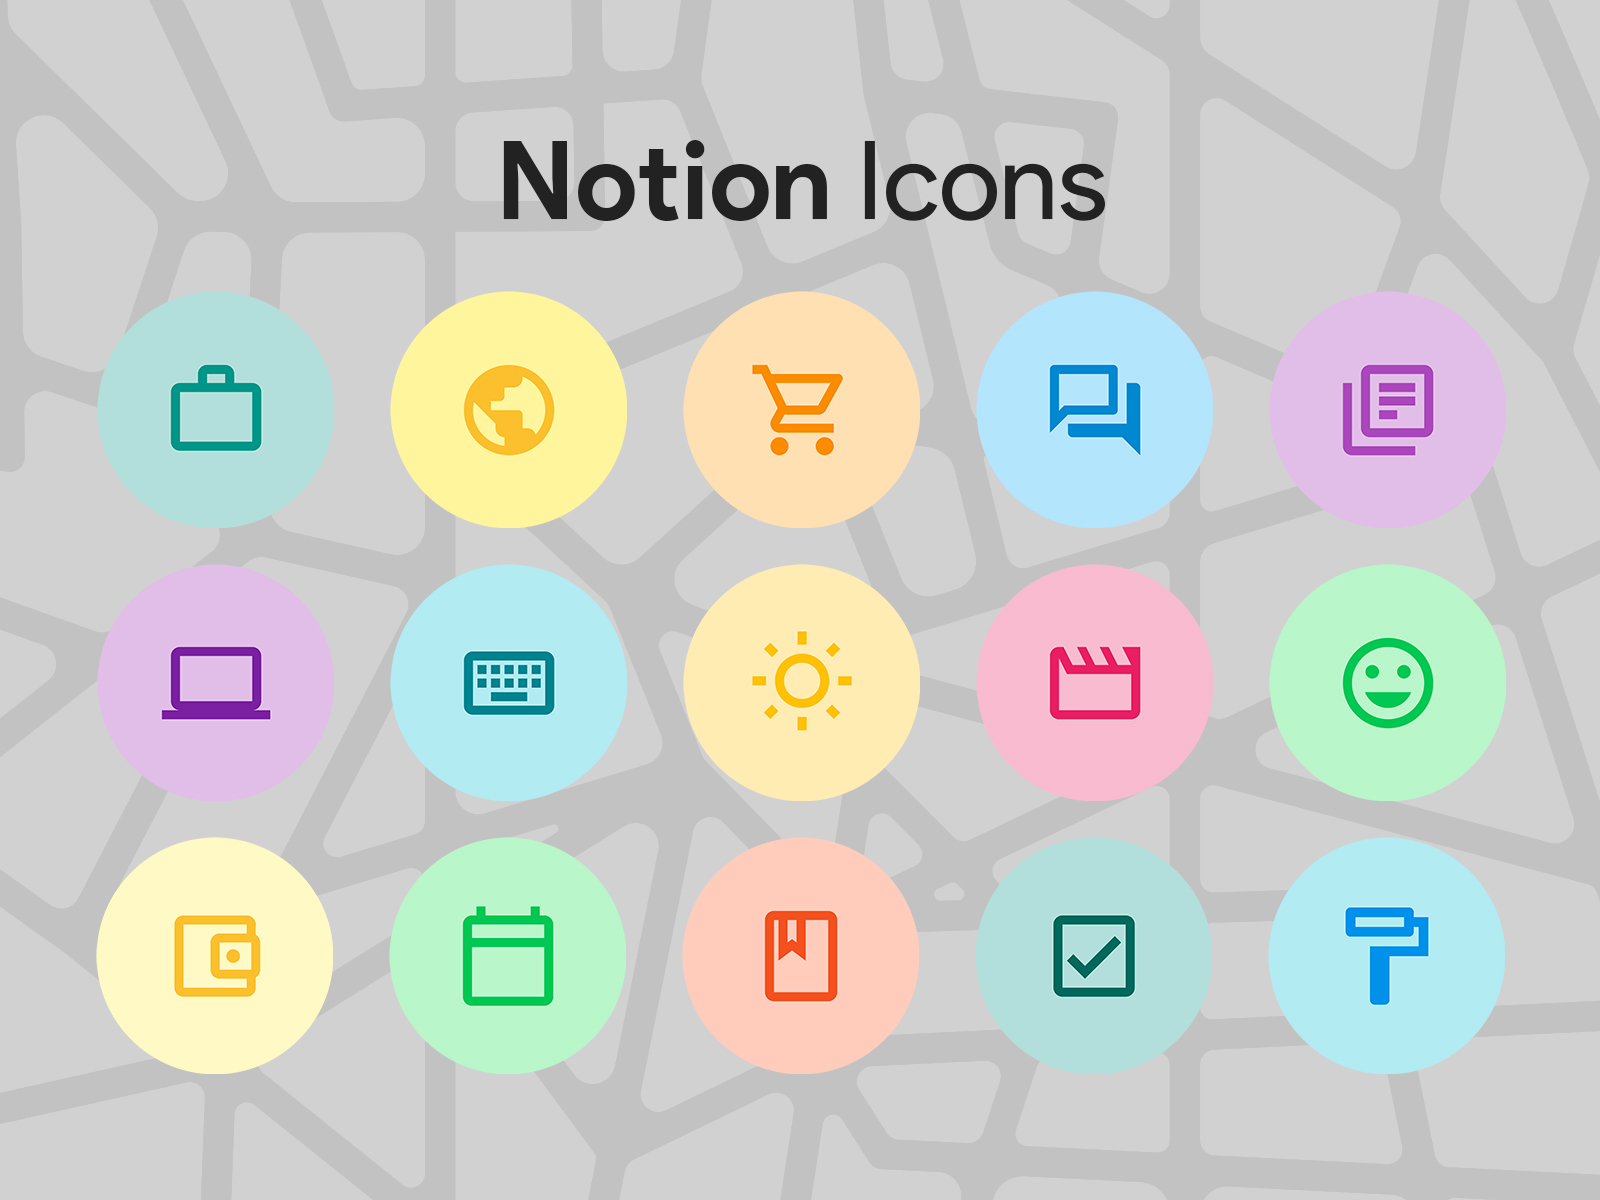 Notion Icons Png